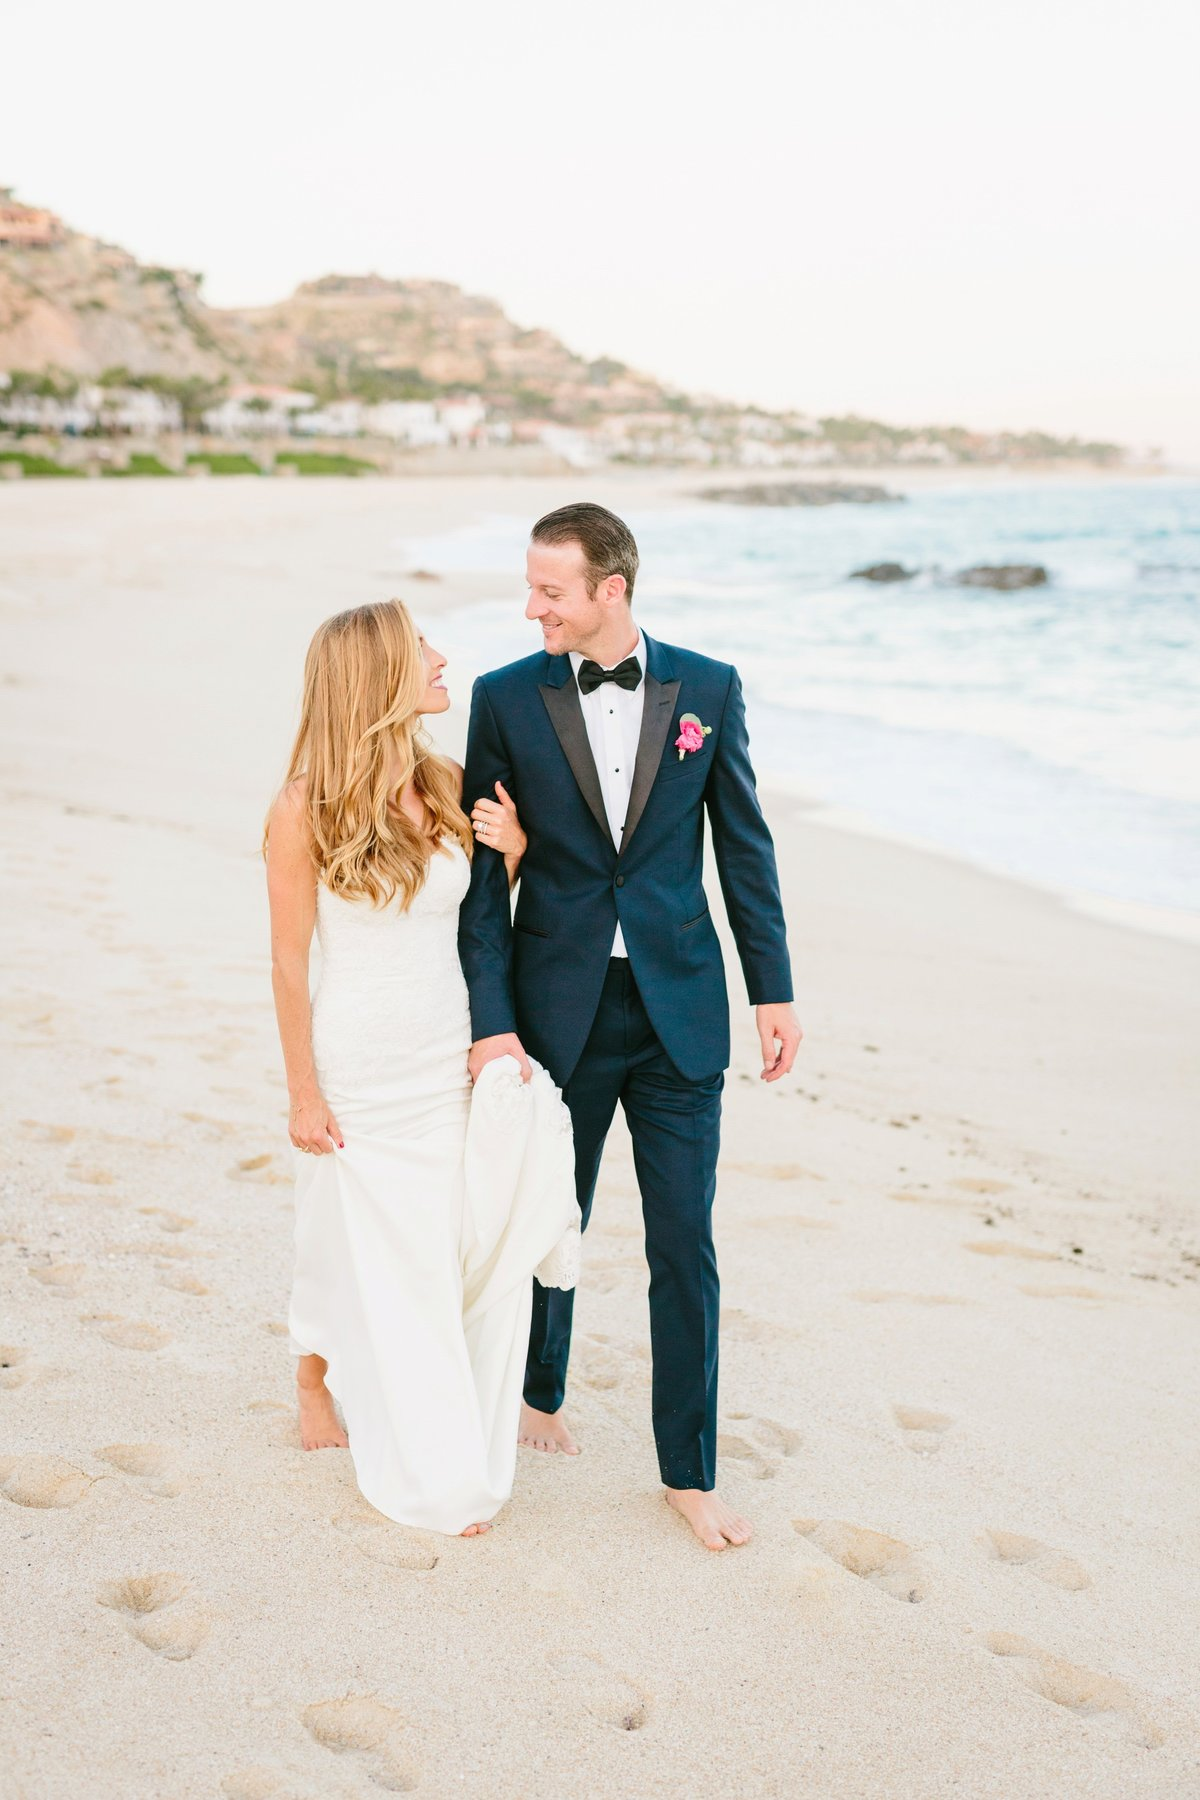 Best California Wedding Photographer-Jodee Debes Photography-309